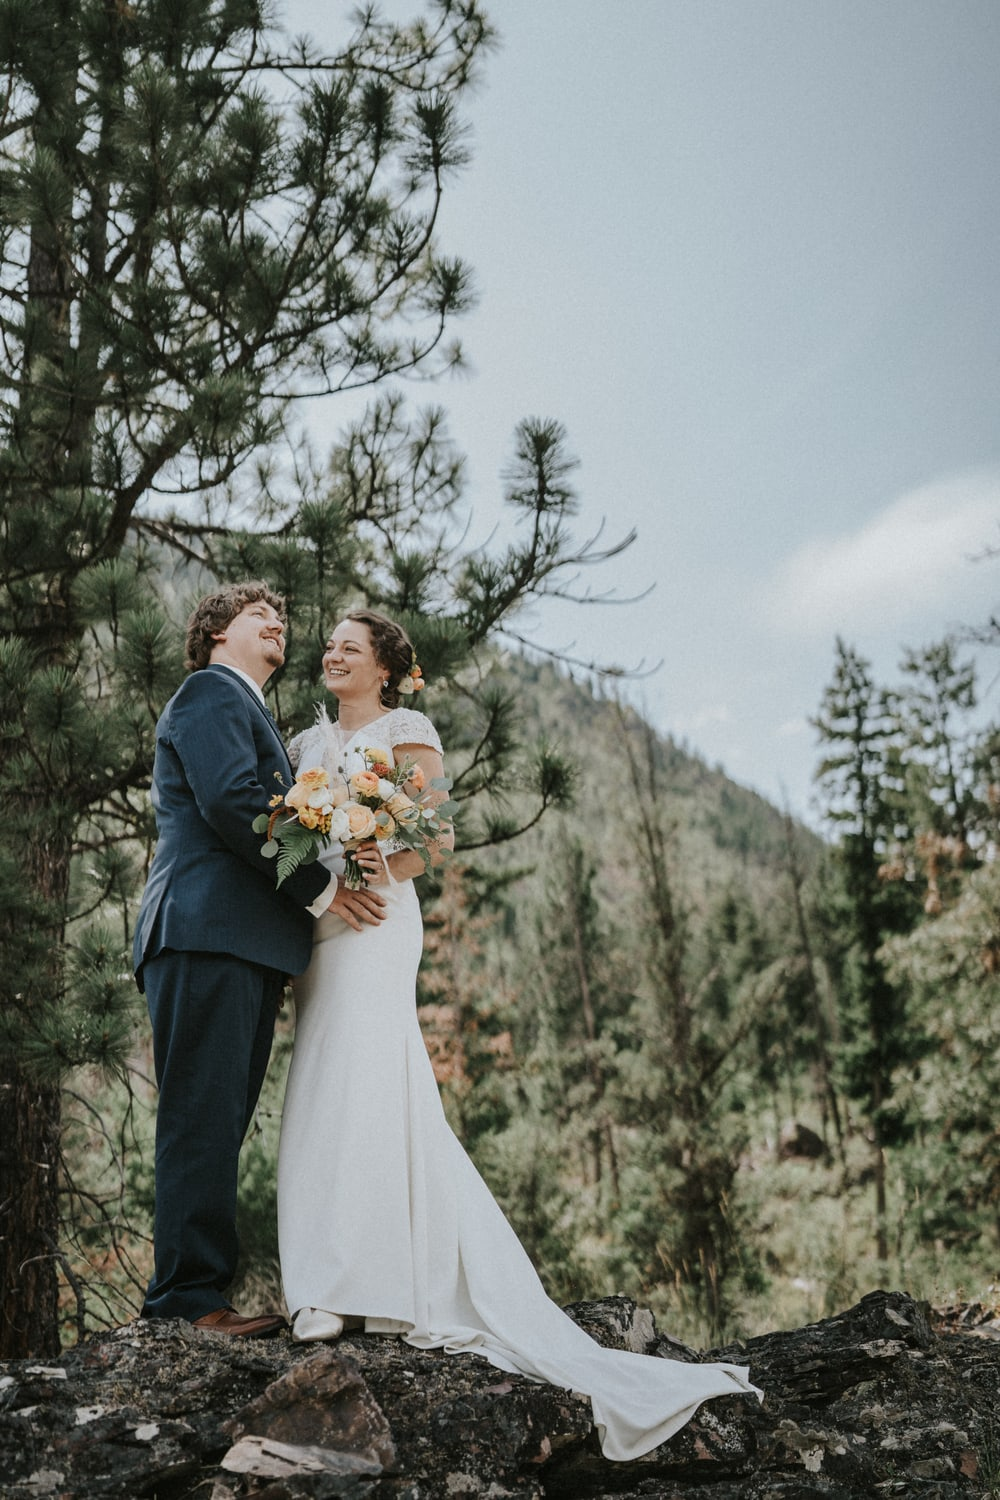 Bride and groom against mountain backdrop